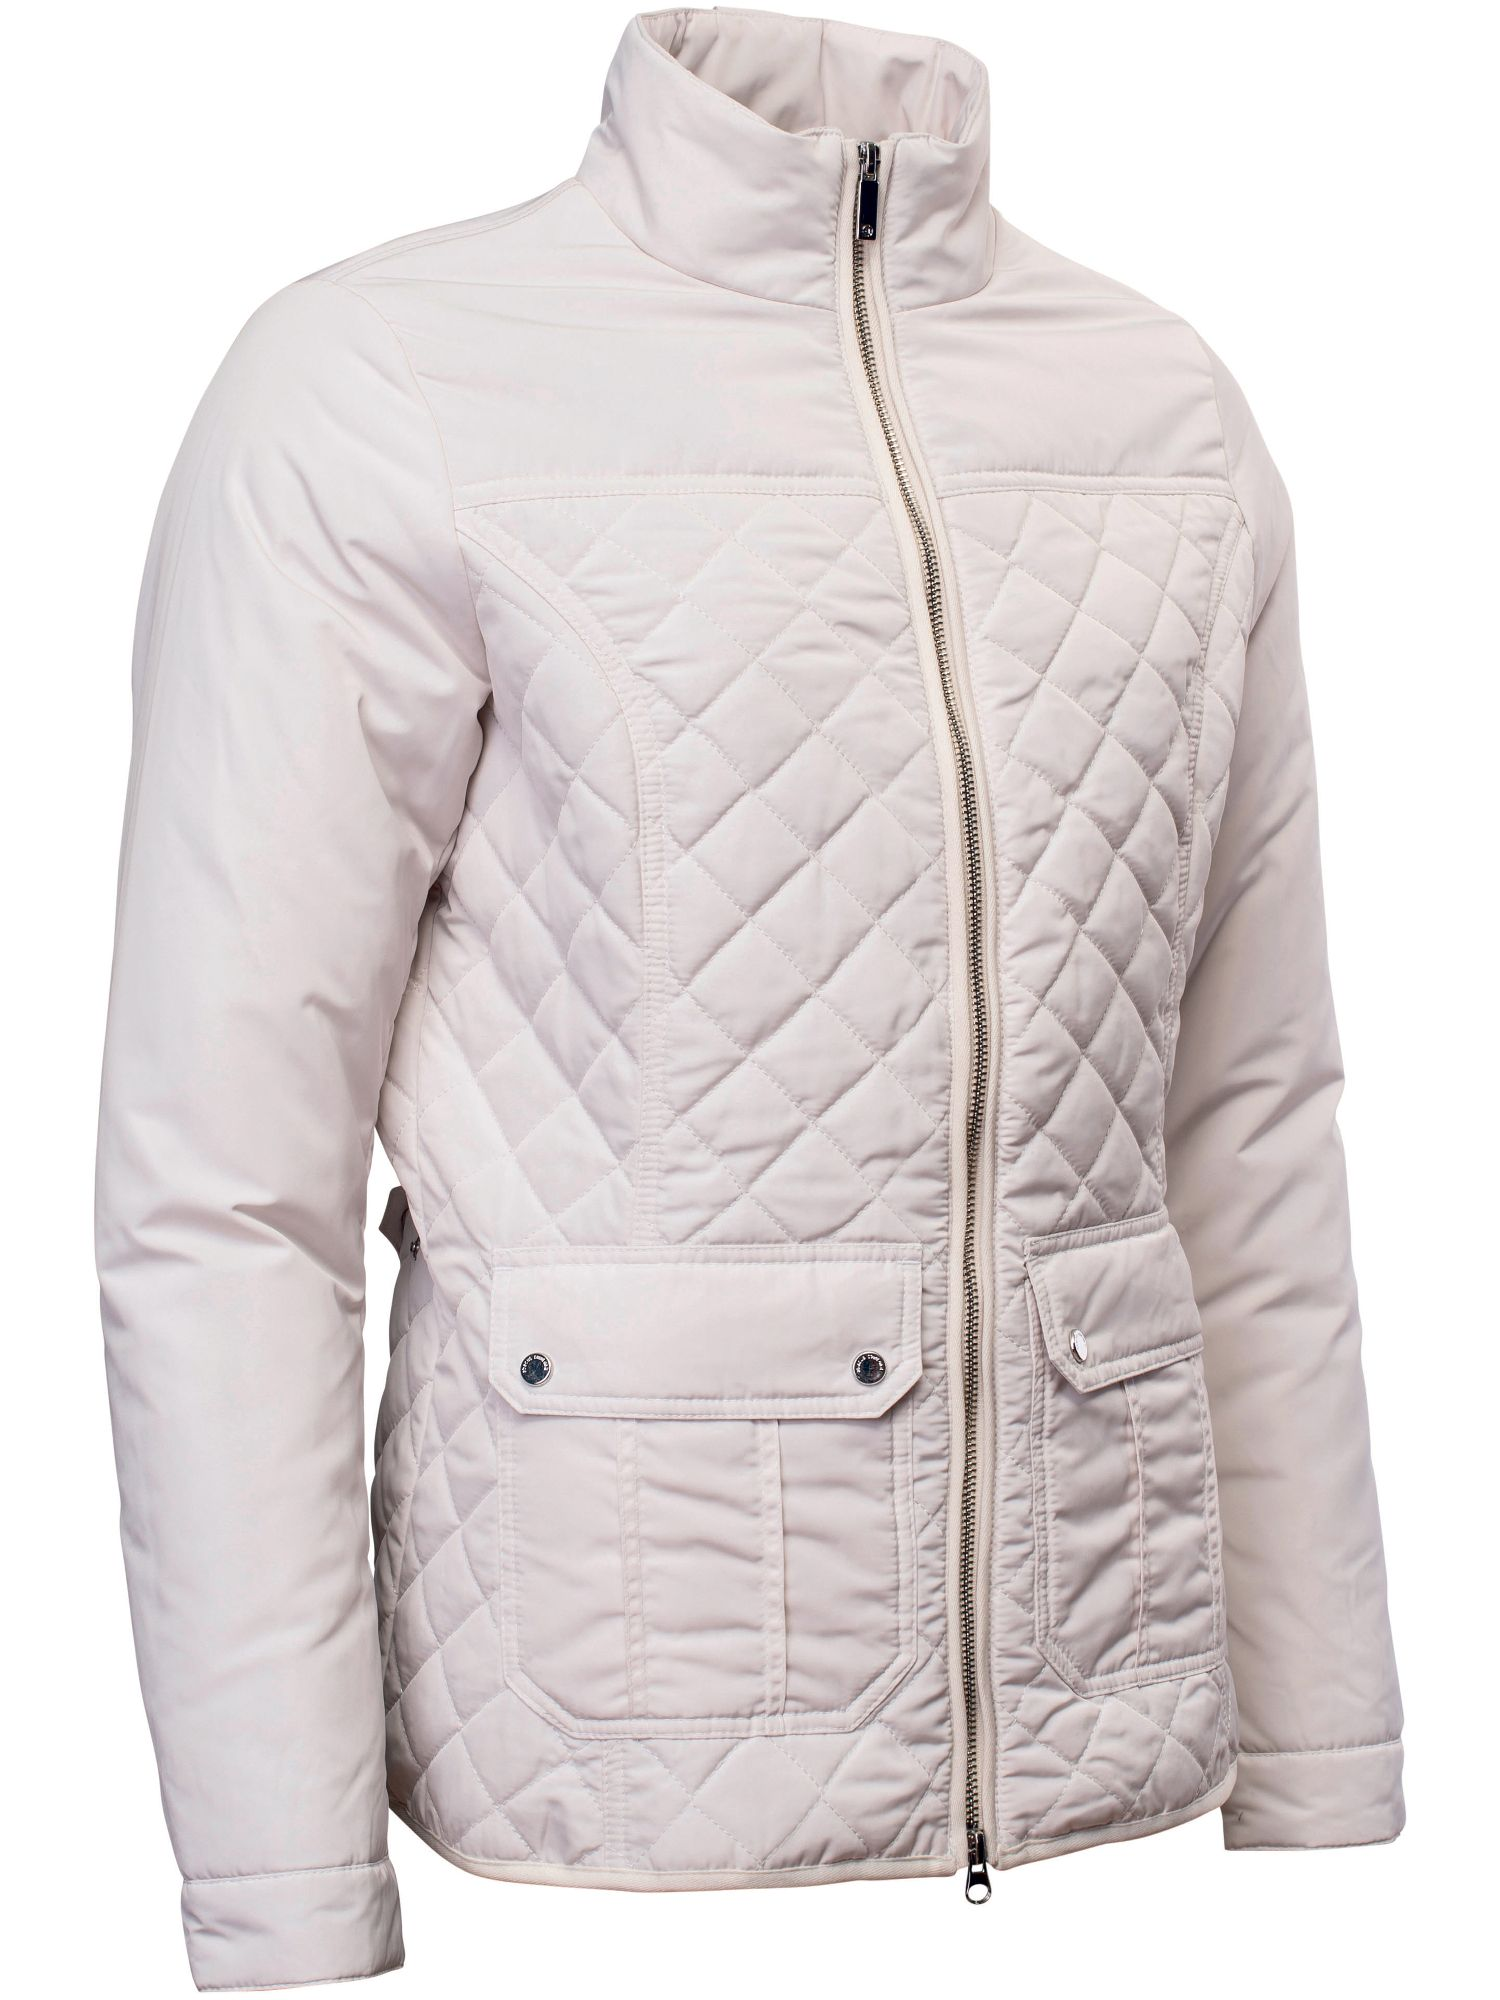 Abacus Holmen Quilted Jacket, White